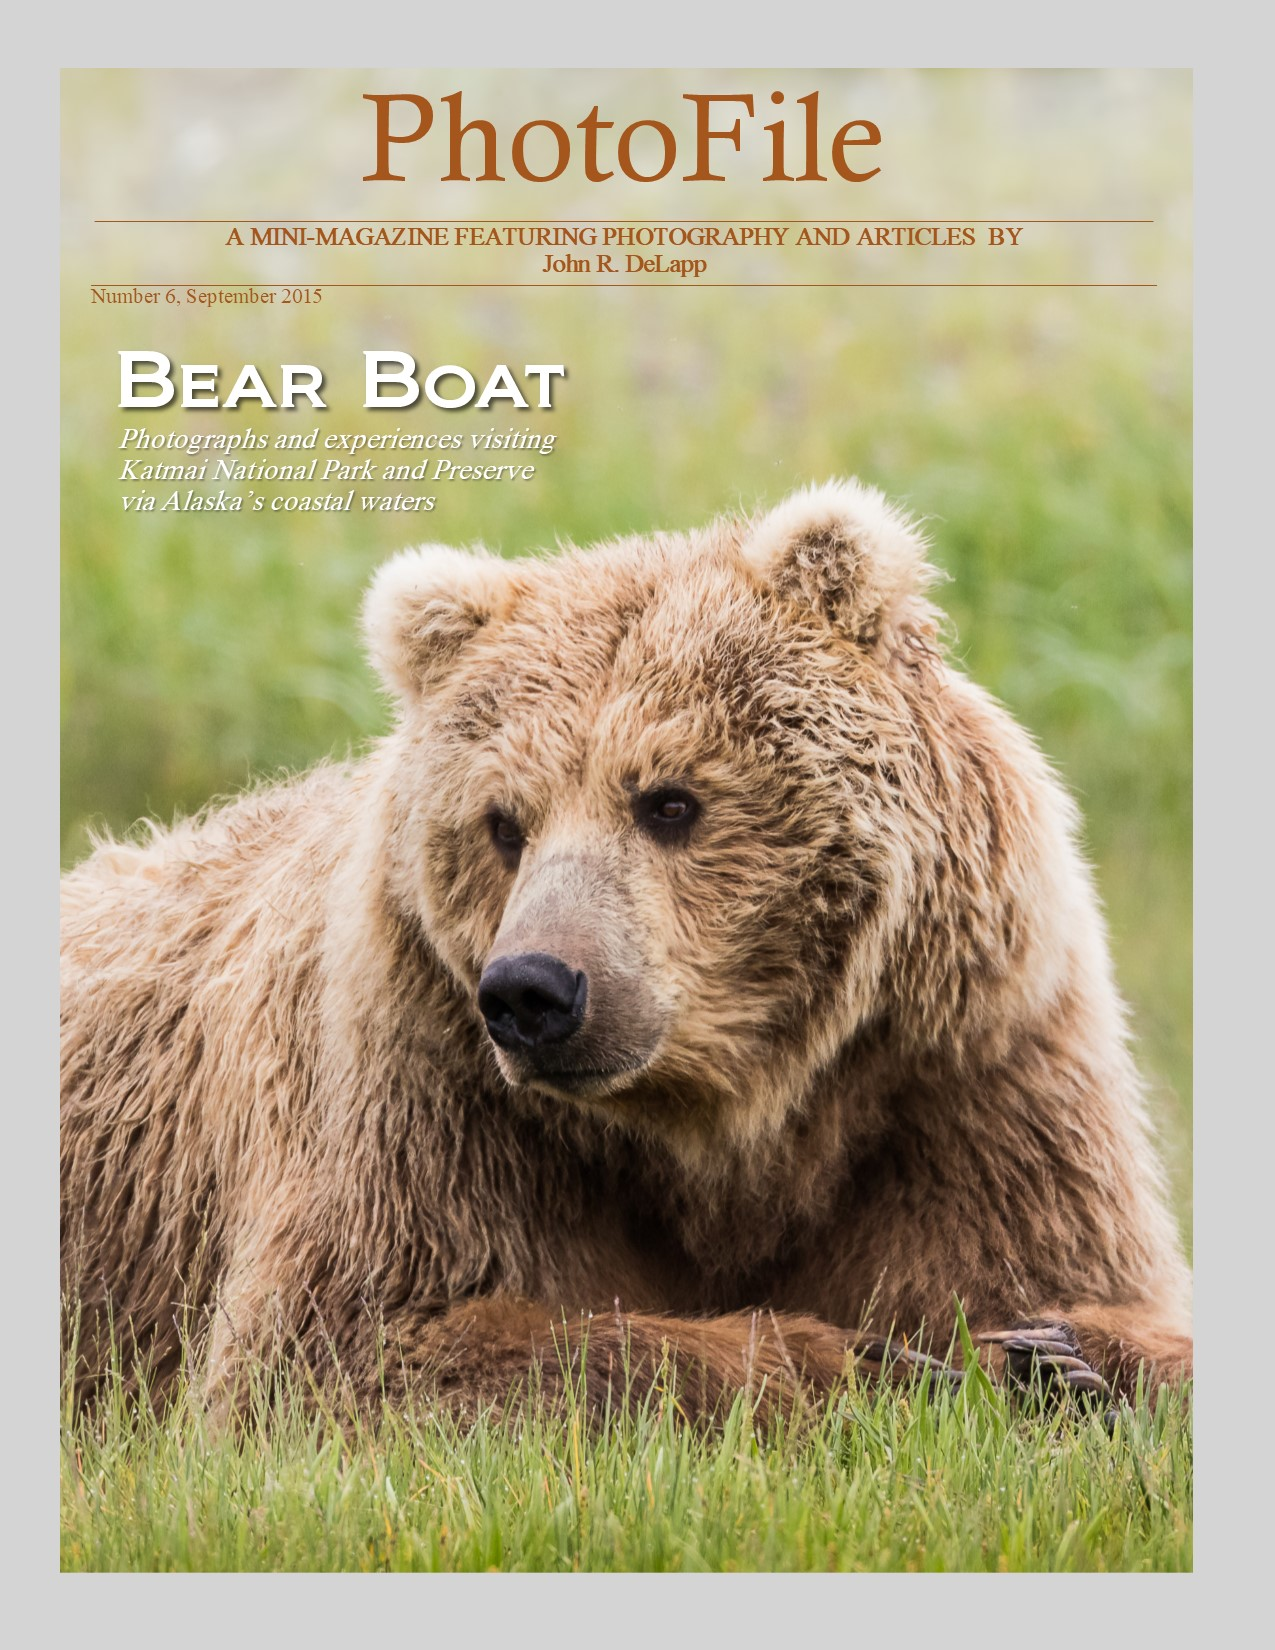 "- Bear BoatThis issue of PhotoFile is devoted to a fly-in trip to a remote portion of Katmai National Park located on Alaska's mountainous coast across Shelikof Straight from Kodiak Island.  Coastal Outfitters' boat, a 72-foot vessel named ""Breezers"", is anchored at Hallo Bay ready for visitors arriving via float planes from Kodiak. Breezers is the visitors' ""bear boat""  wilderness home for the next several days.  Included here is an account of this wilderness adventure along with many amazing images made during this trip in July of 2015."